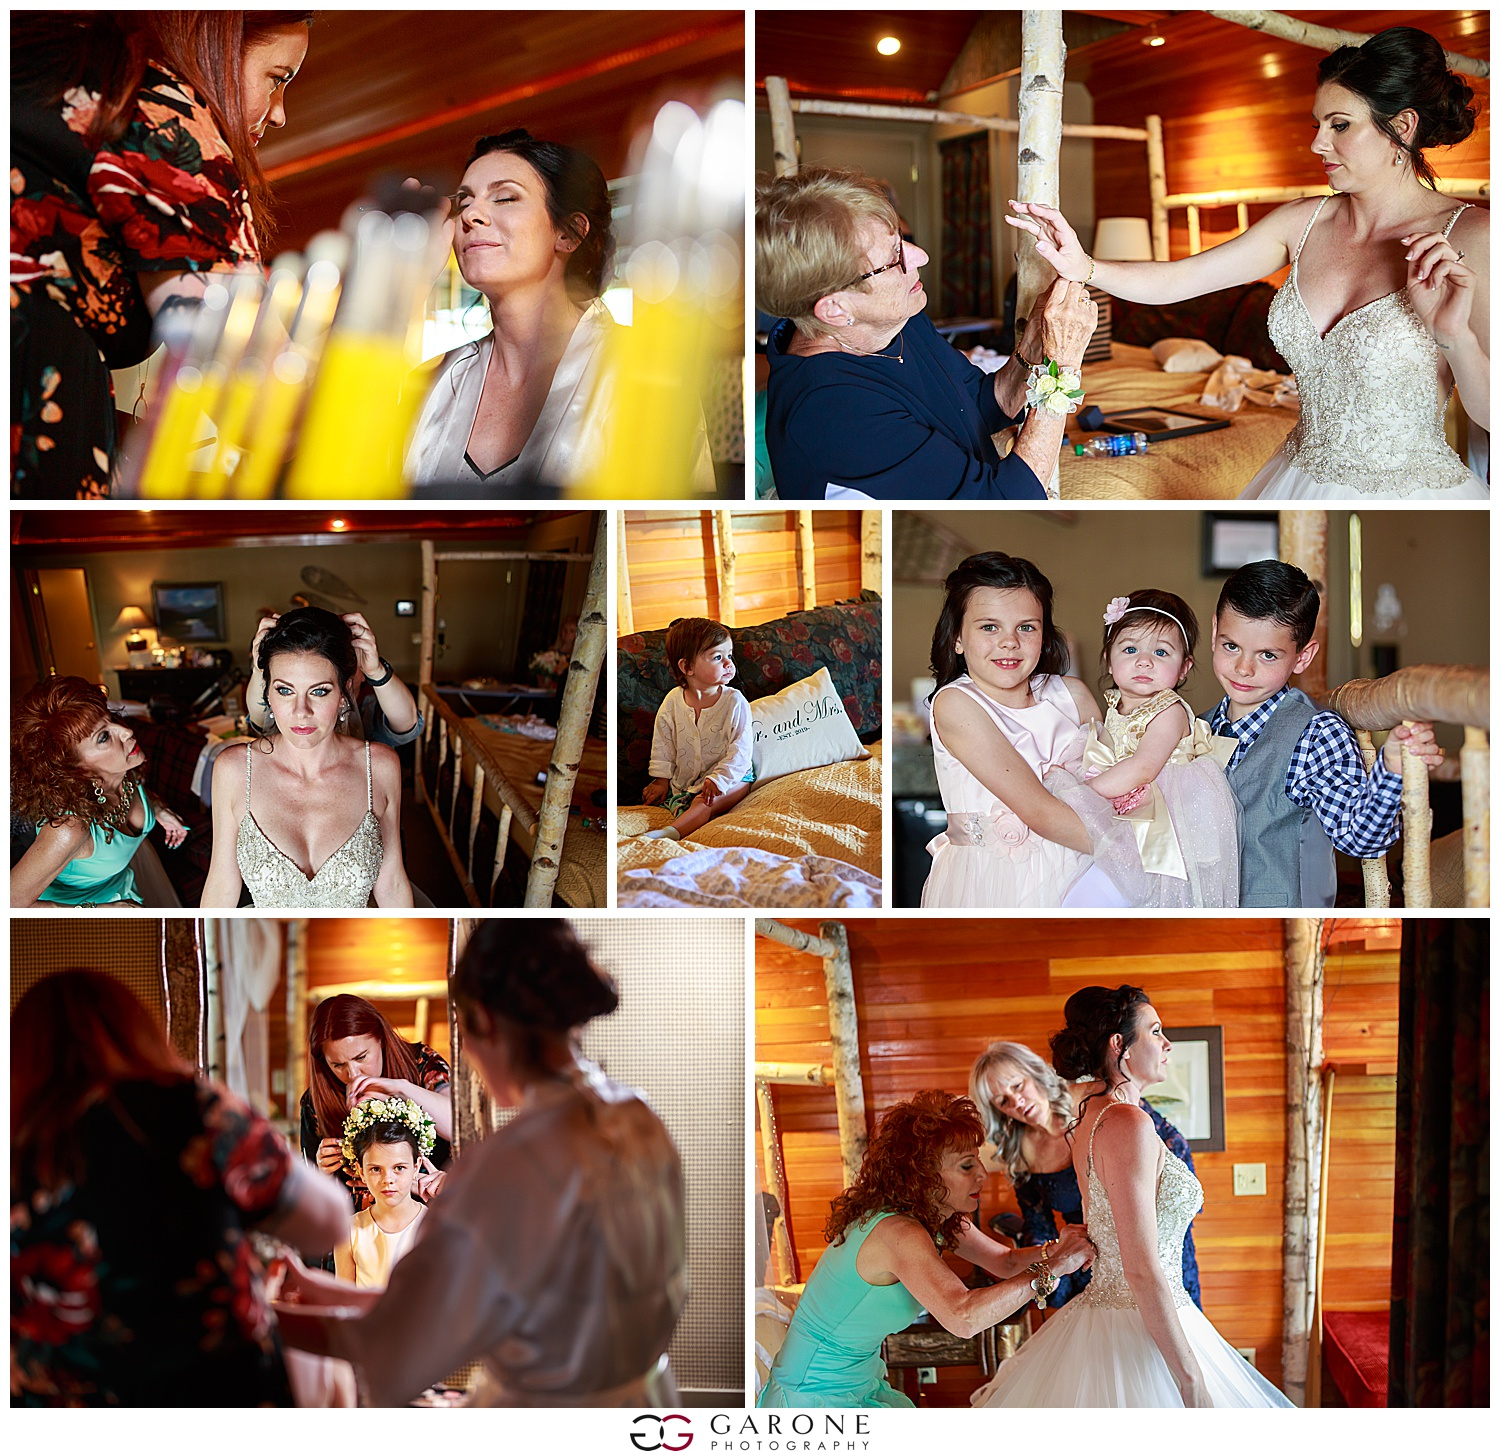 Shauna_Nathan_Carriage_House_Chuch_Landing_Lake_Winnapausakee_Wedding_0009.jpg